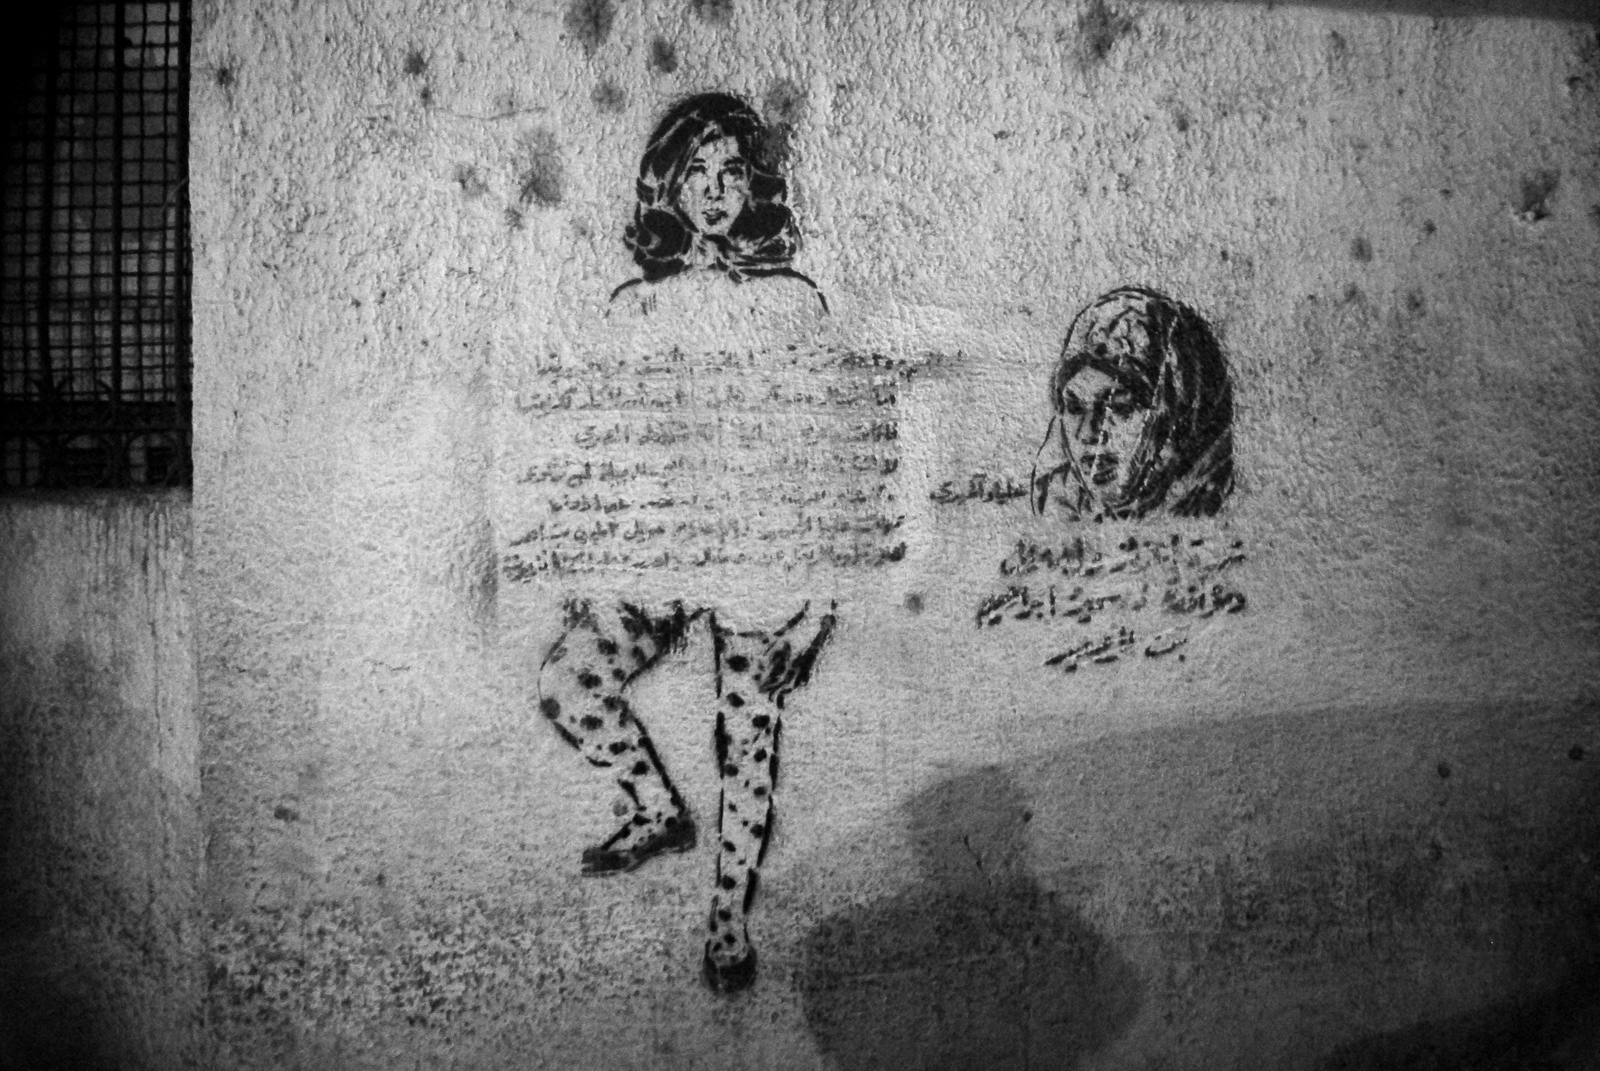 Grafitti stencil of Aliaa Maga Al-Mahdy (left), after whom The Naked Blogger of Cairo is named, and Samira Ibrahim (right) (photo: Lilian Wagdy).